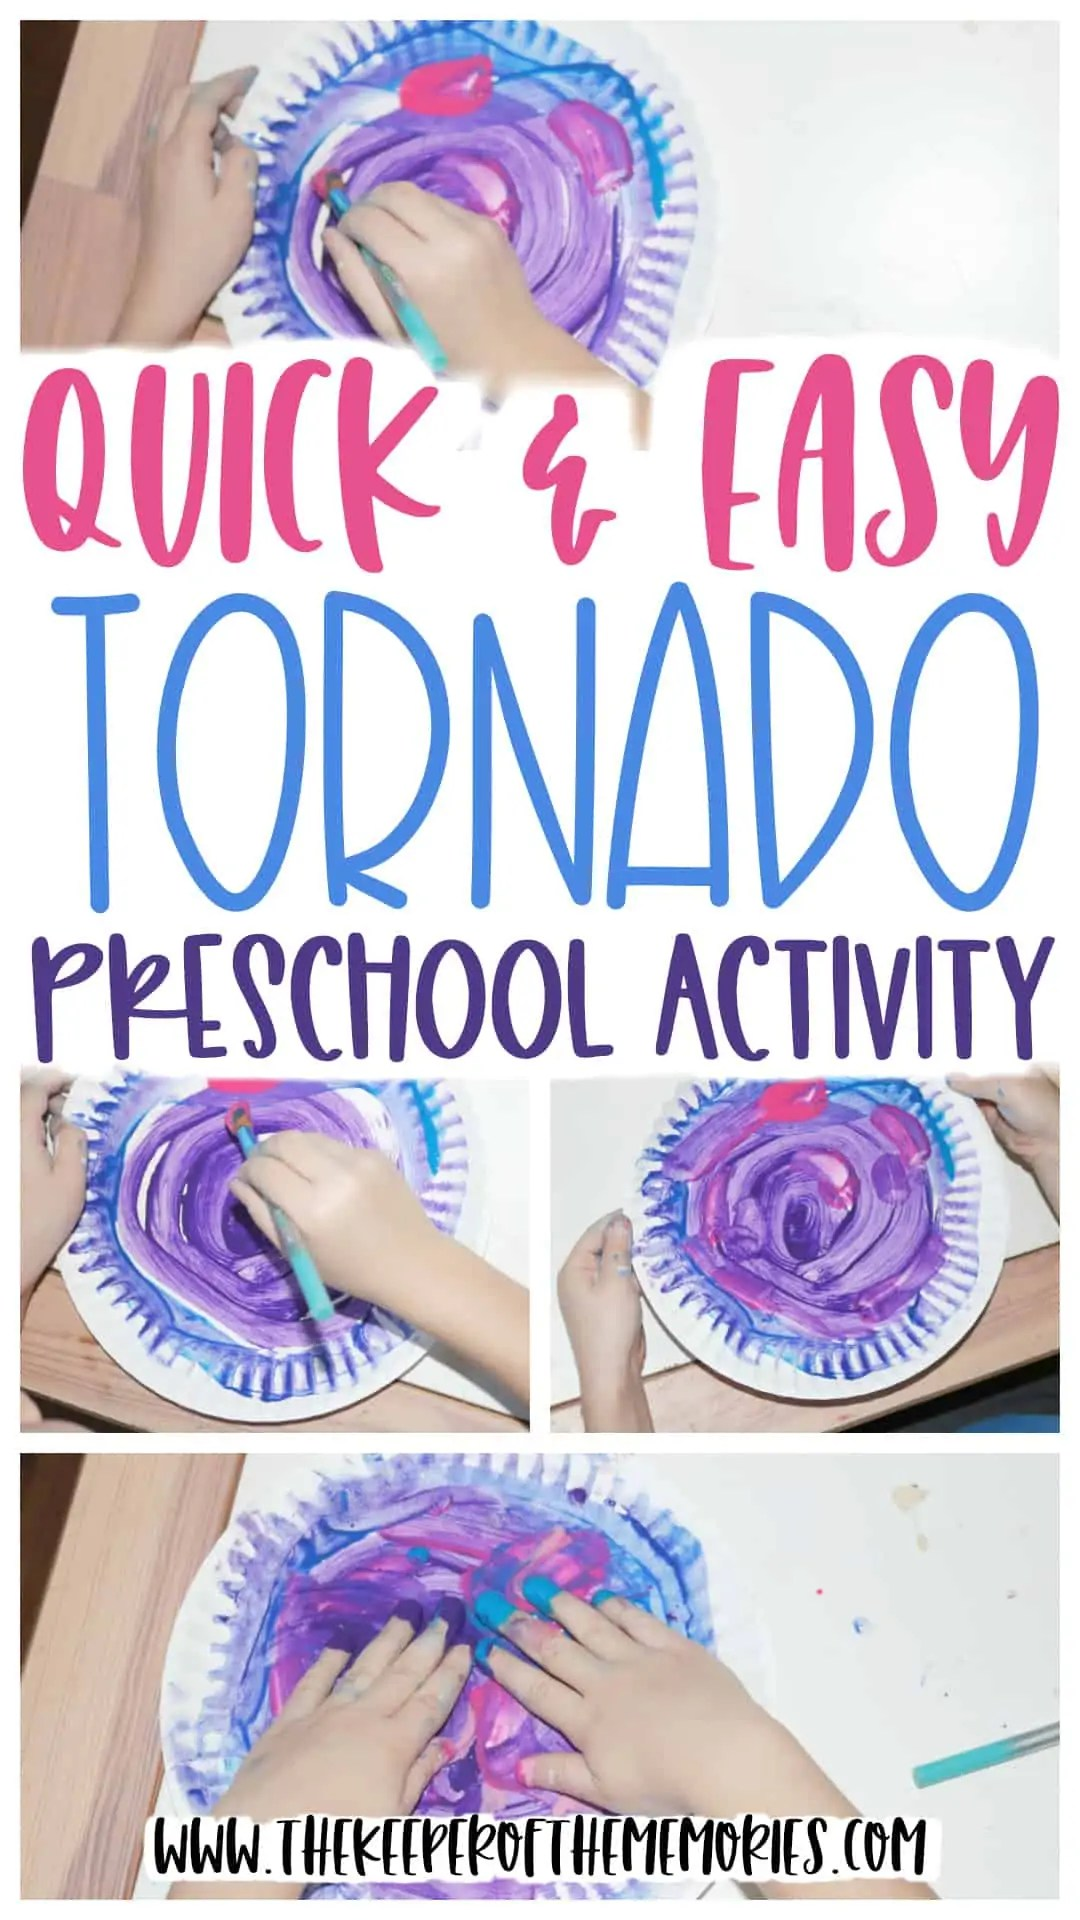 Quick Amp Easy Tornado Preschool Activity